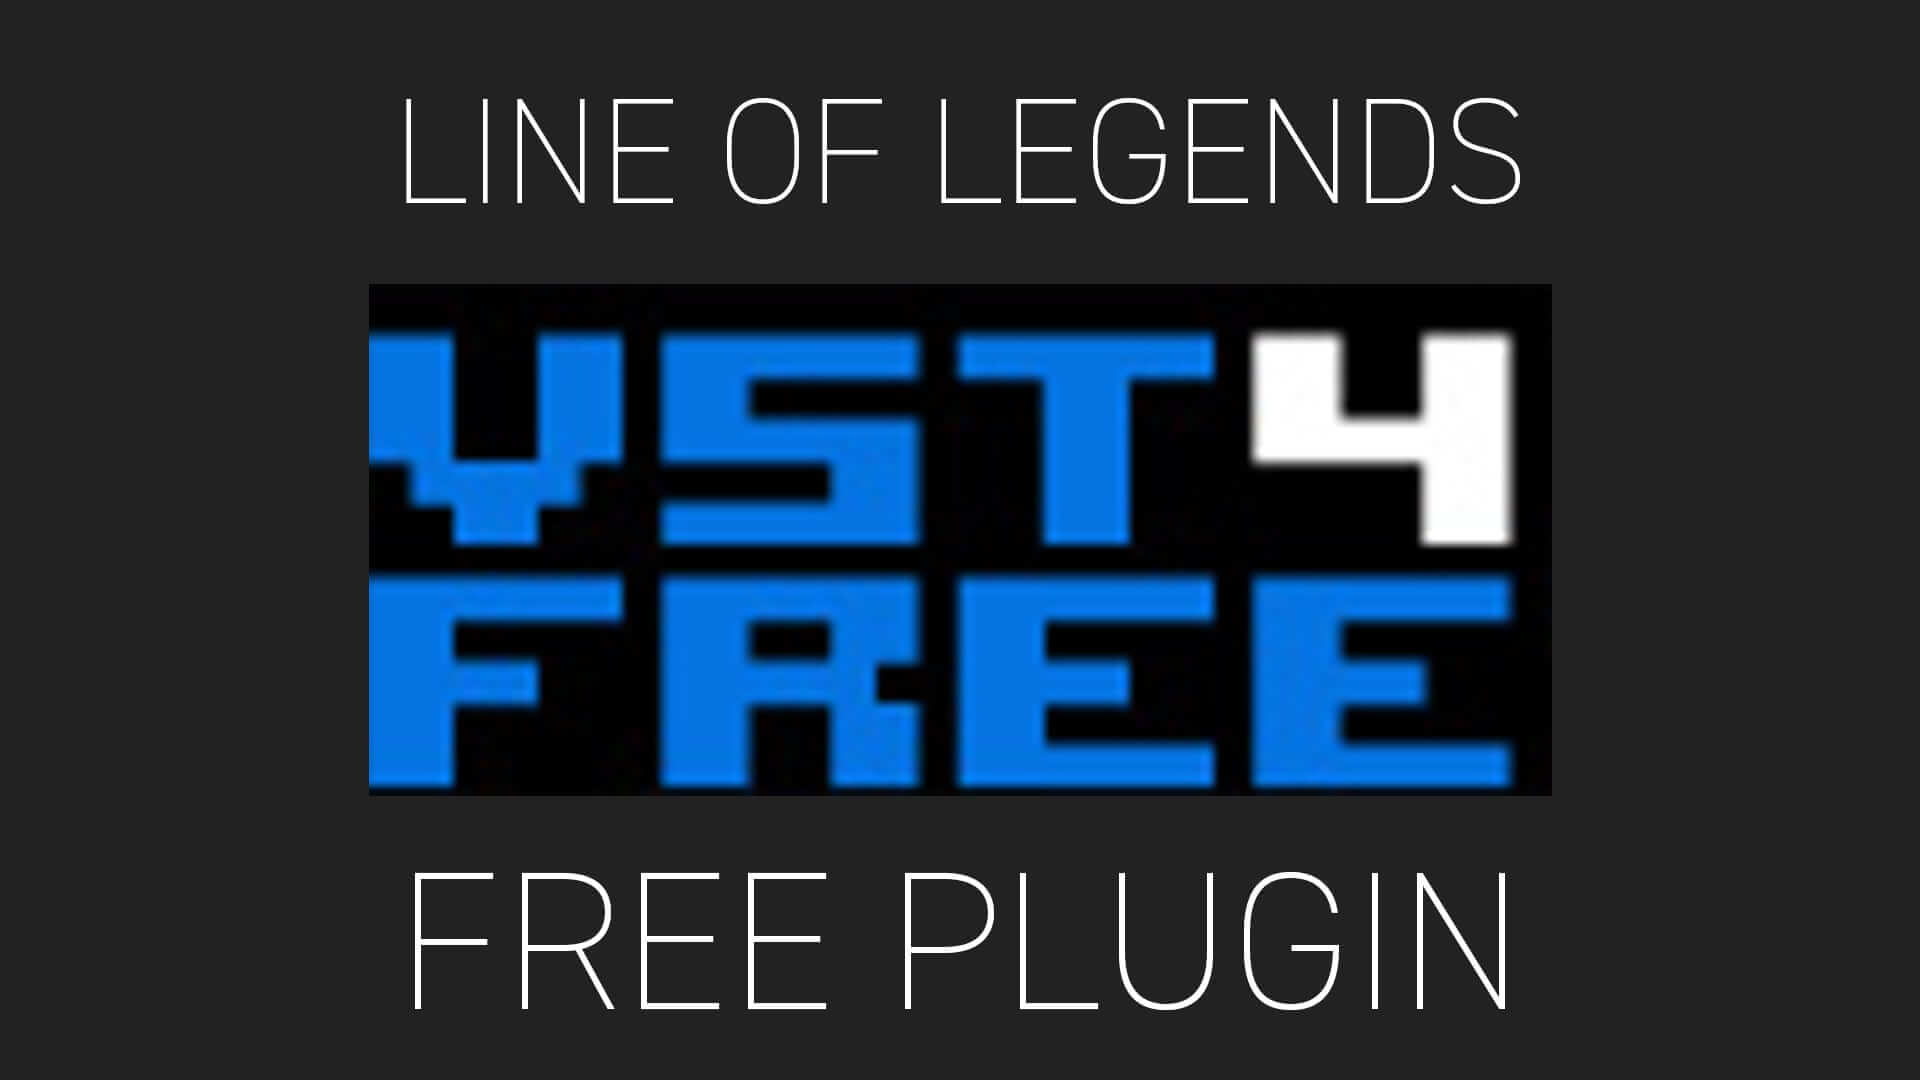 Line Of Legends by VST4FREE Free Plugin